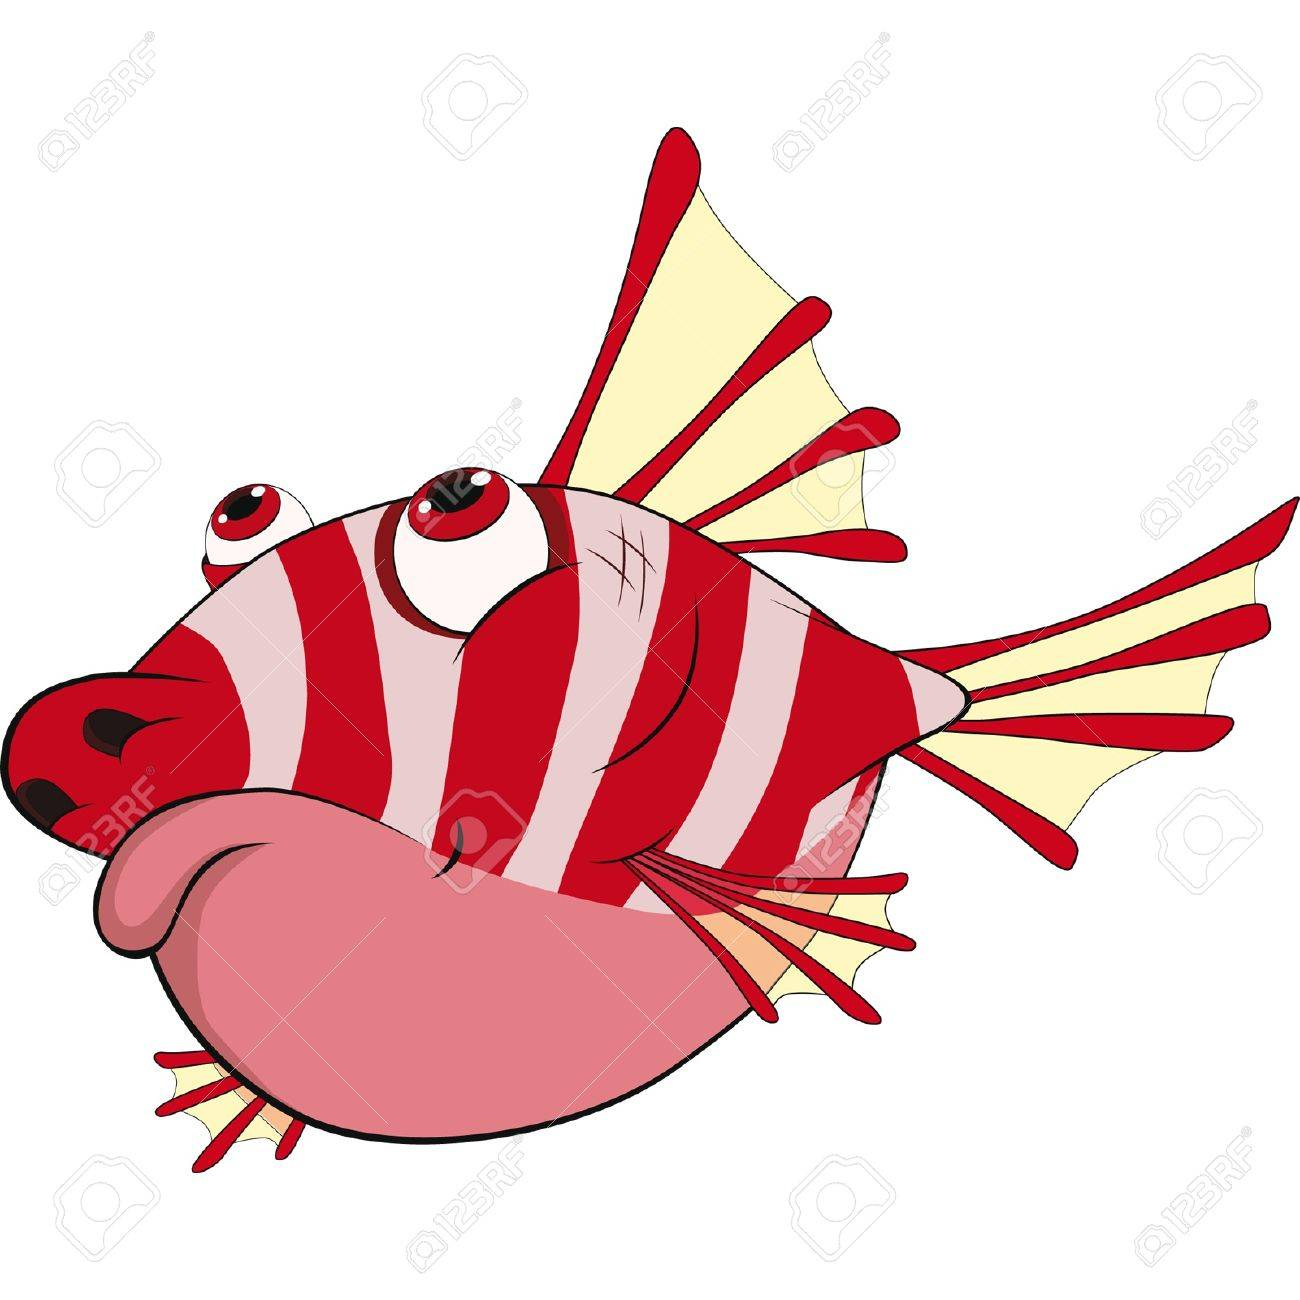 Prickly Coral Small Fish. Cartoon Royalty Free Cliparts, Vectors ...